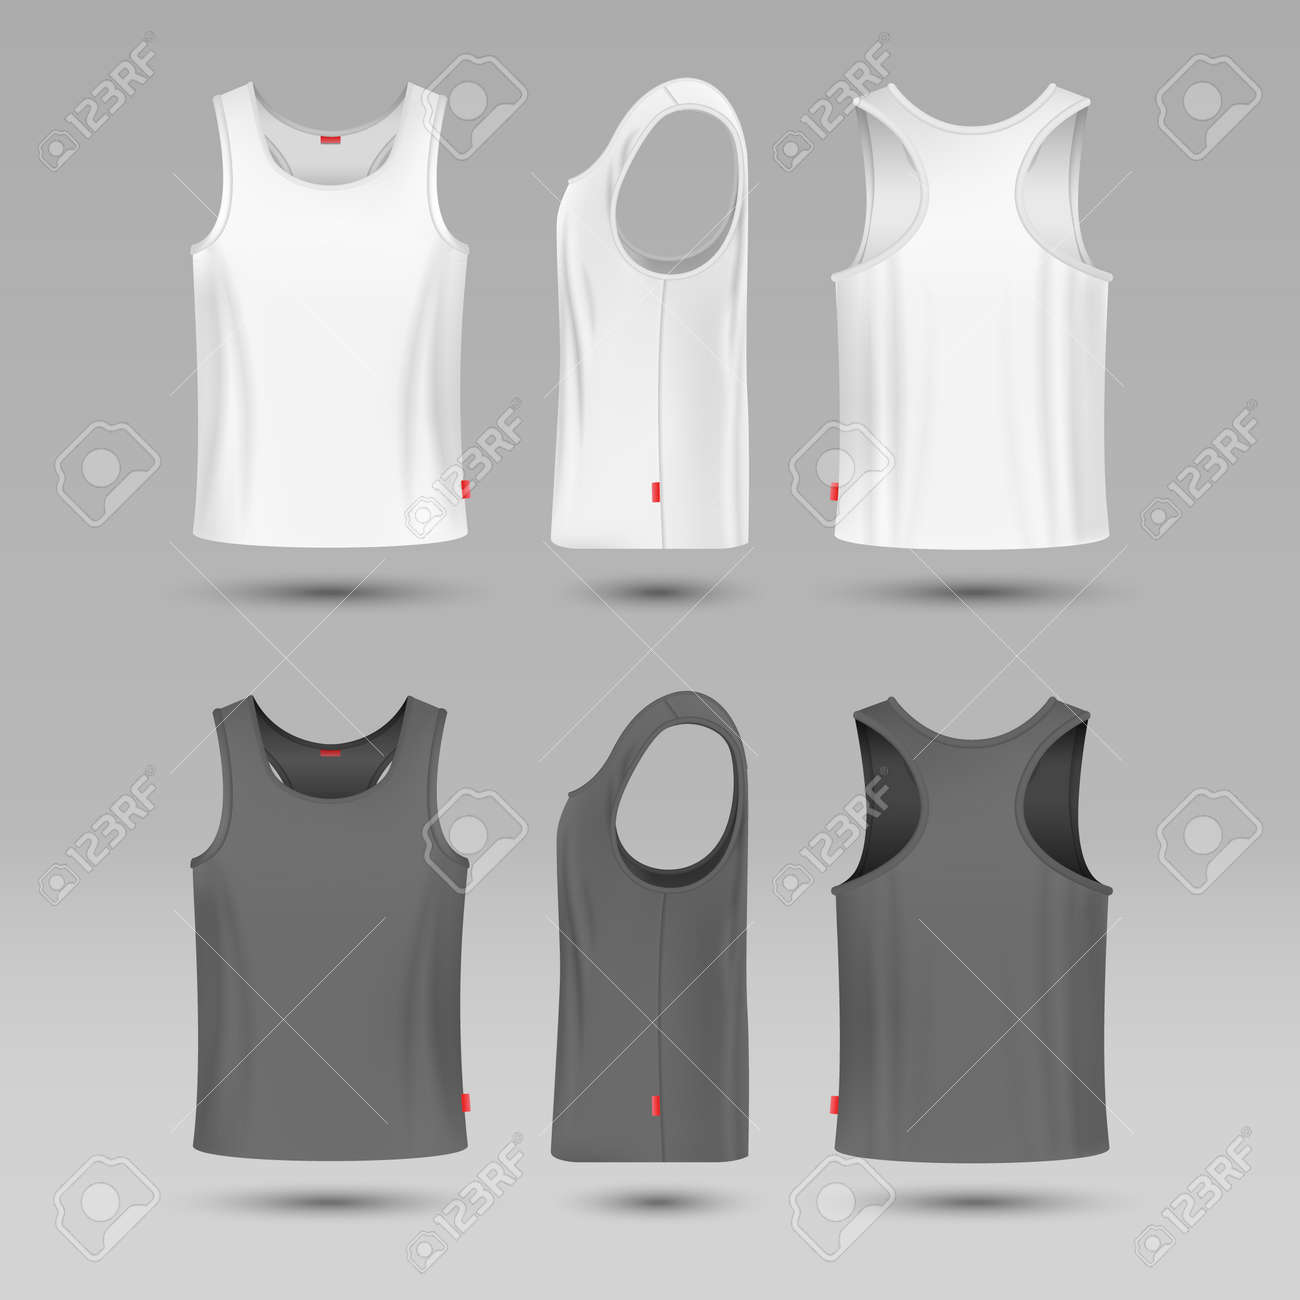 Mans white blank tank singlet. Male shirt without sleeves vector template. T-shirt front and back, illustration of mock up shirt - 165949939